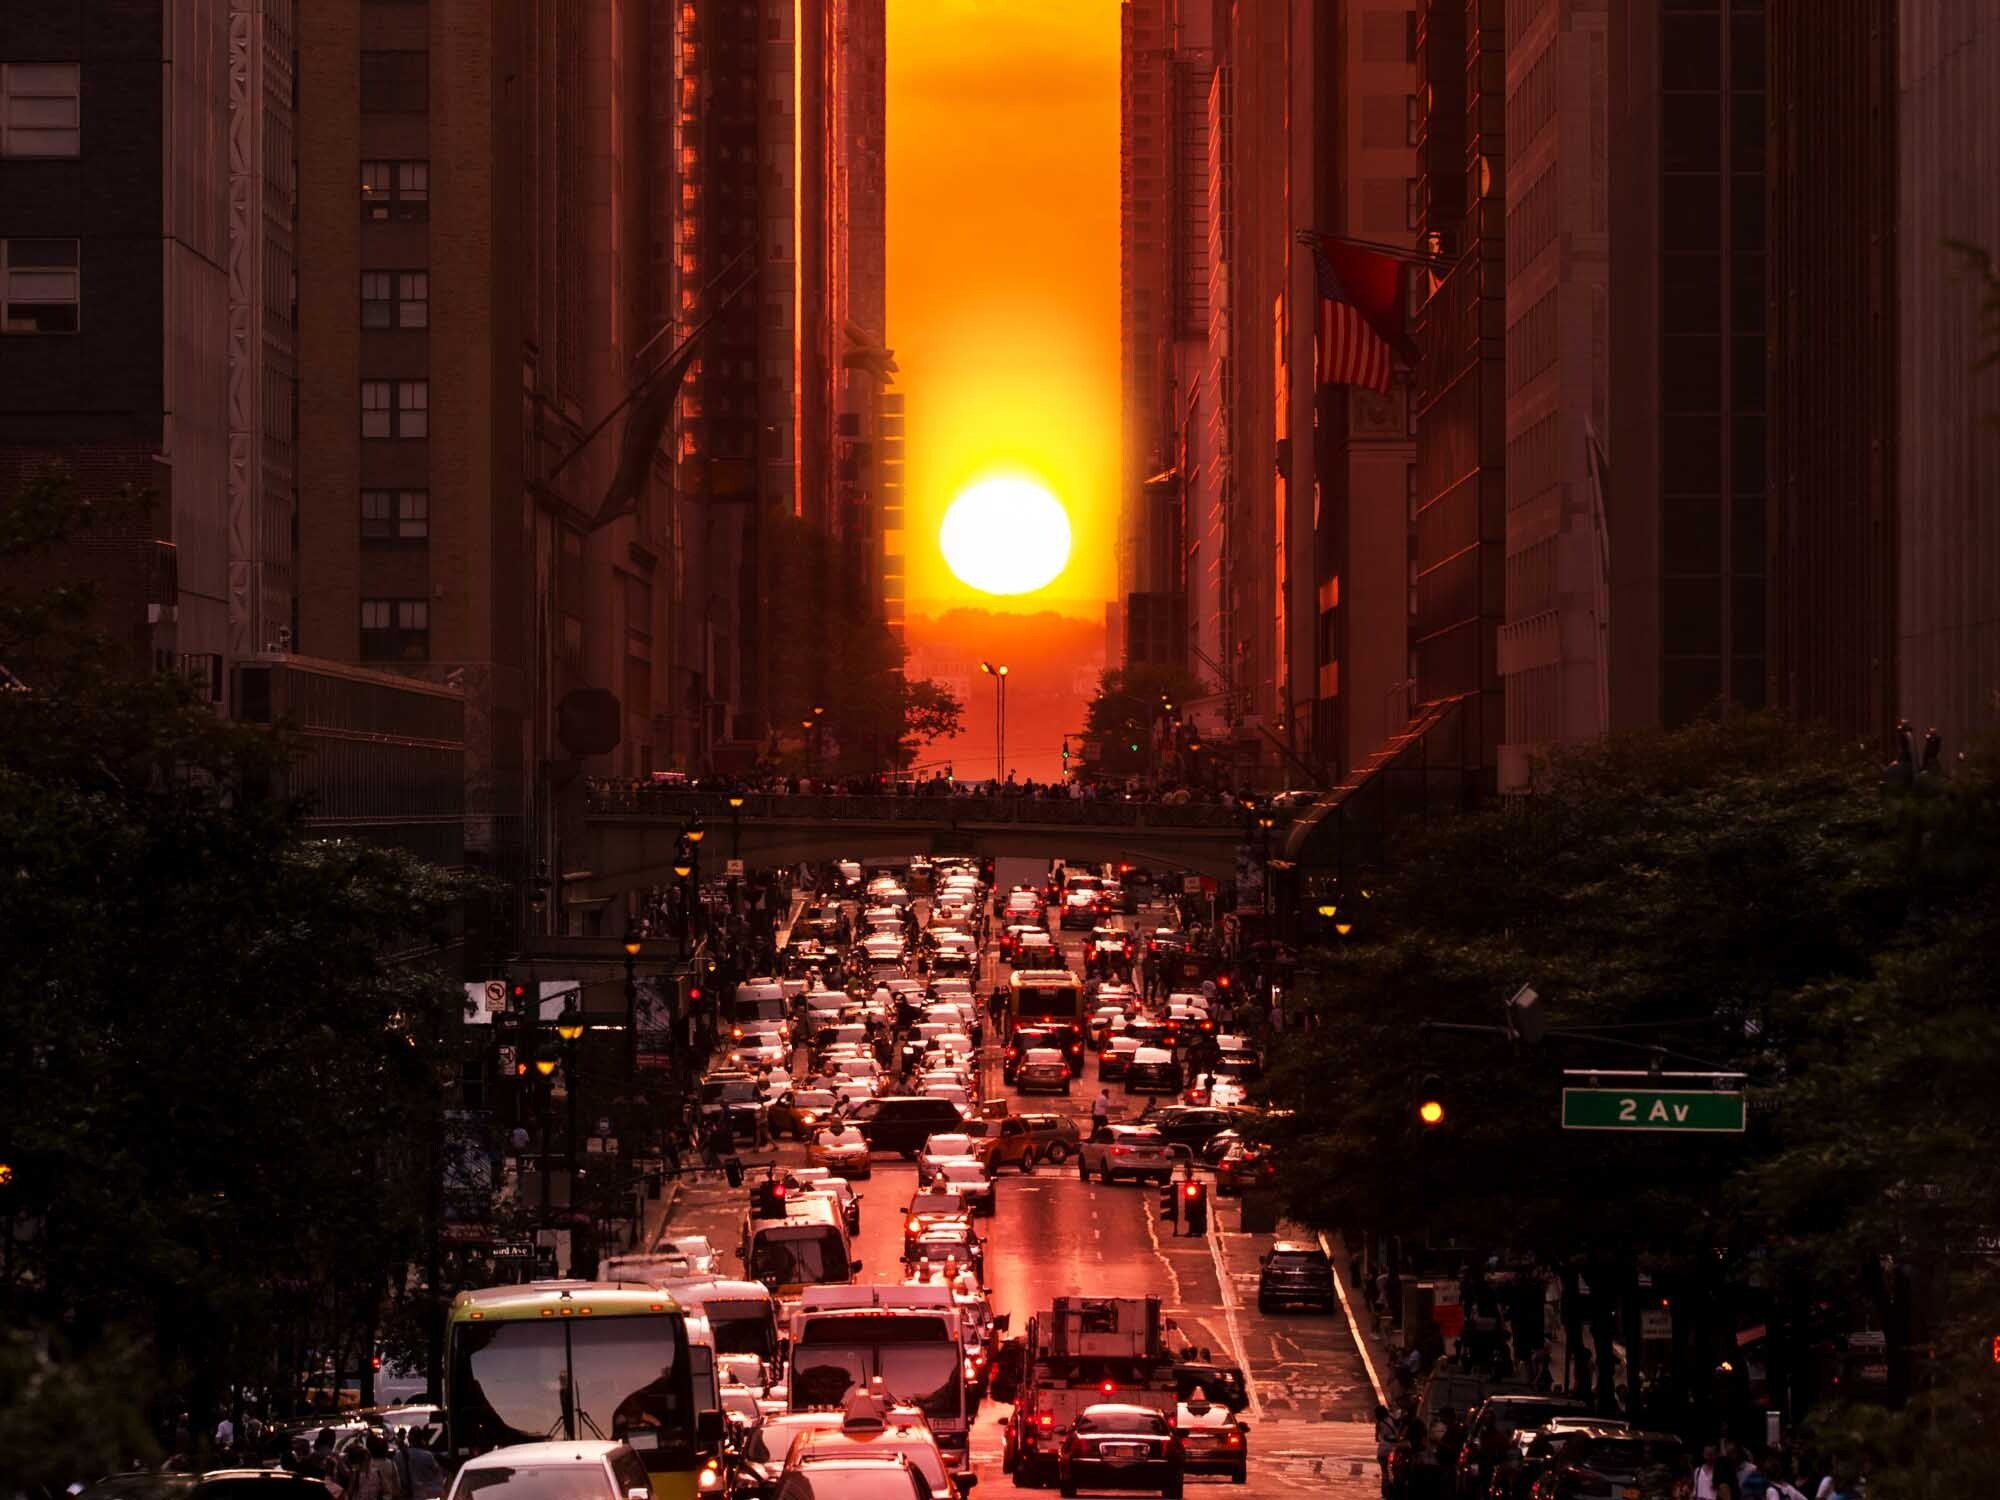 The Manhattanhenge sunset is happening this weekend